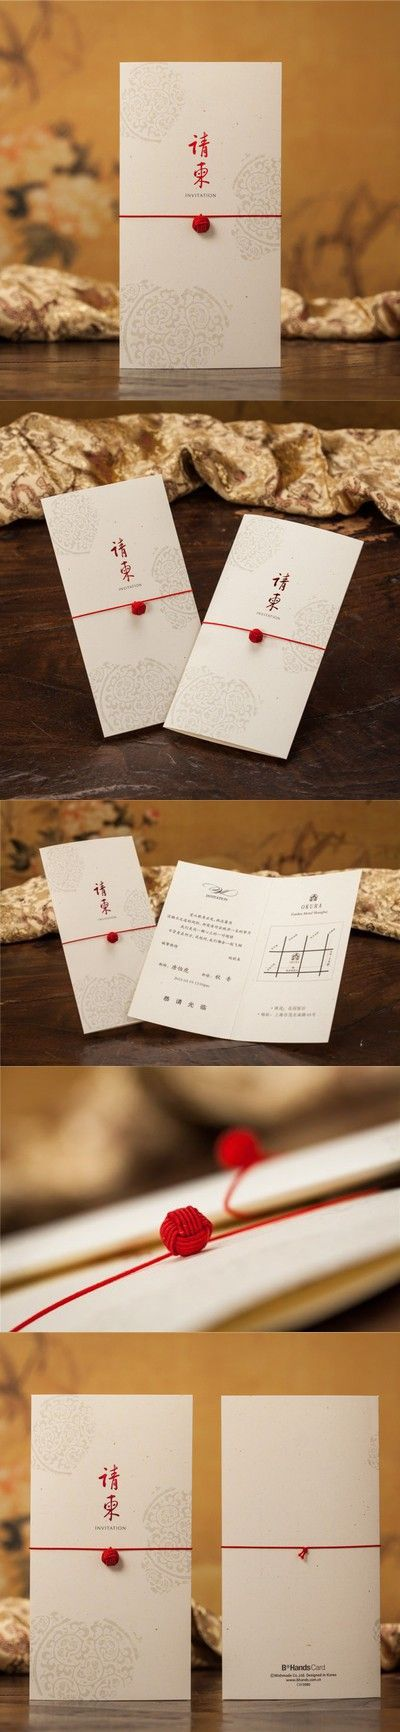 chinese wedding invitation card in malaysia%0A     best Chinese wedding images on Pinterest   Oriental wedding  Wedding  cards and Wedding stationery